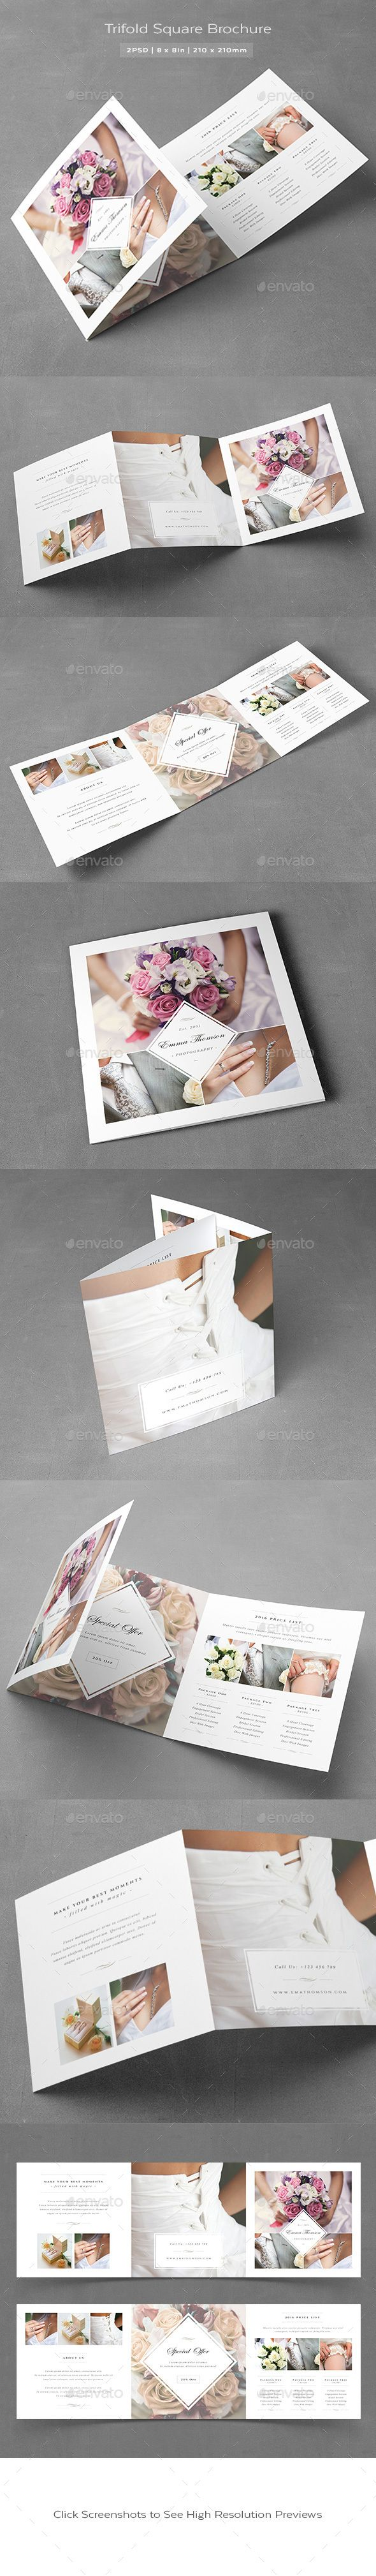 Photography Square Trifold Brochure Template PSD #design Download: http://graphicriver.net/item/photography-square-trifold-brochure/14257275?ref=ksioks